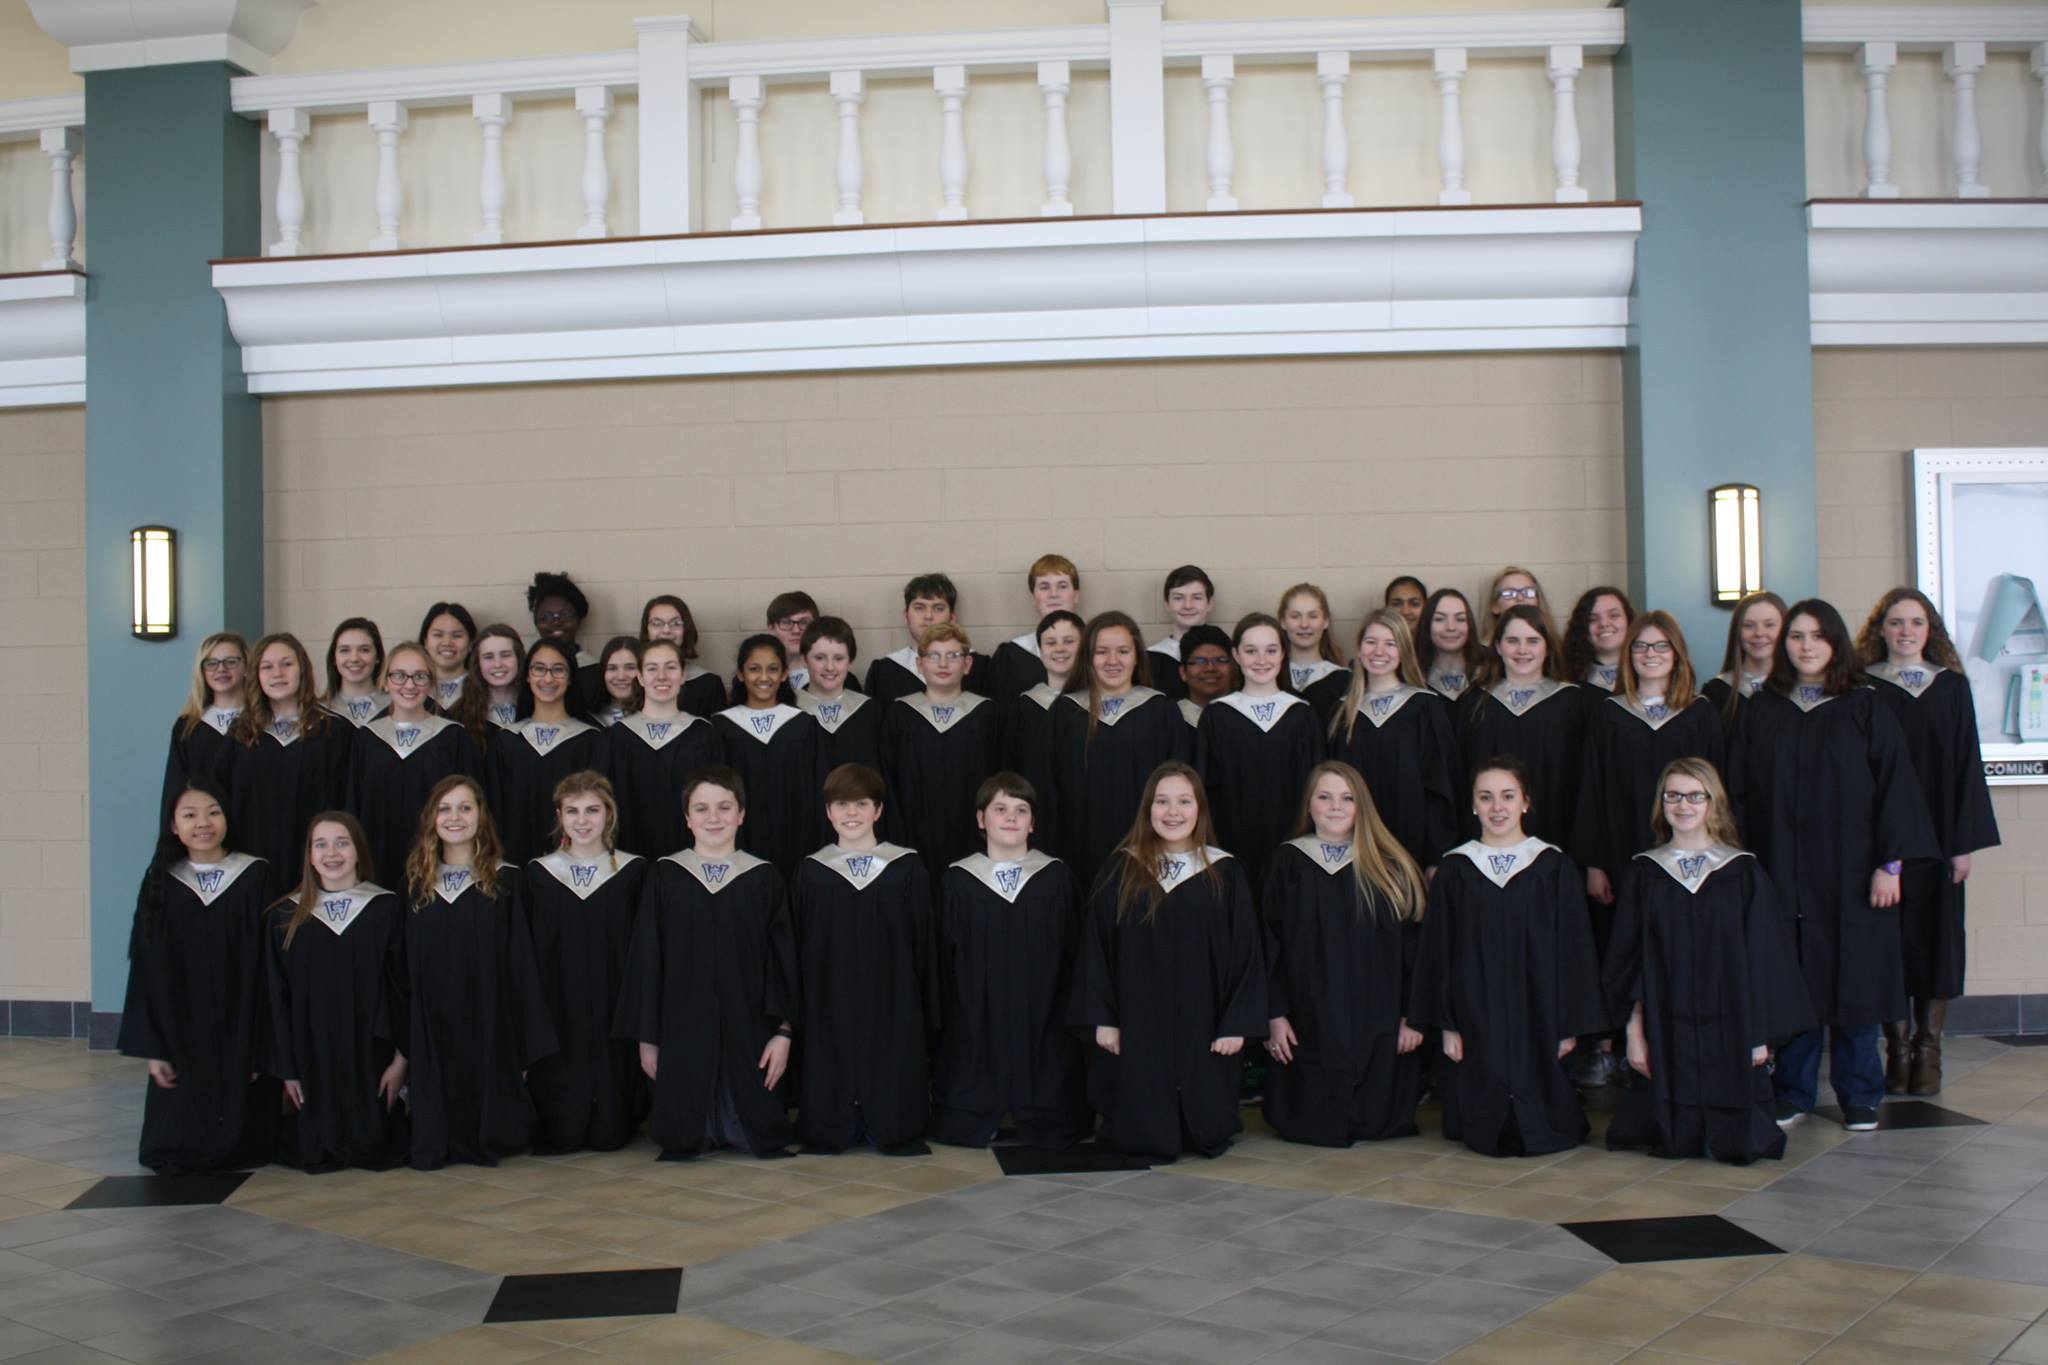 South Warren Middle School Mixed Choir